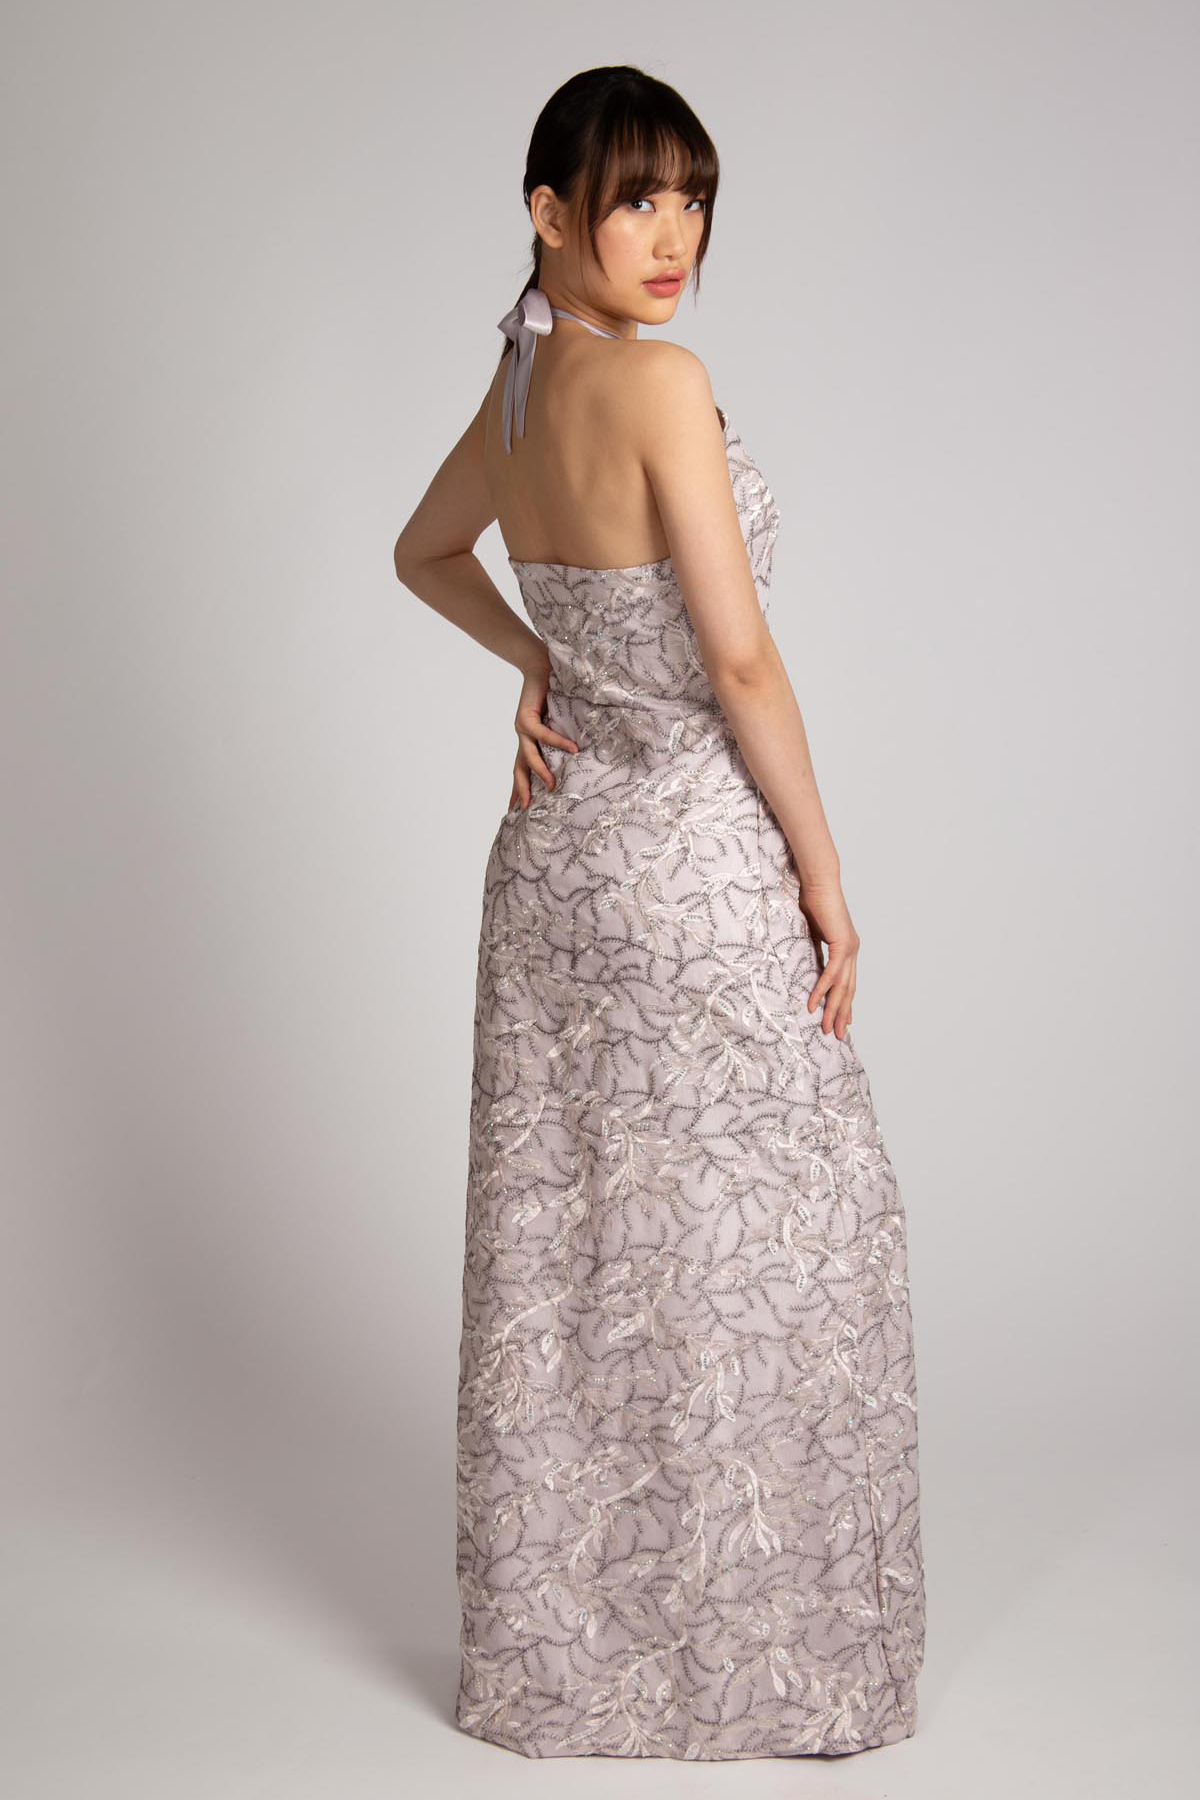 Hongman Li models a silver violet evening gown with low cut back made of tulle with embroidery.